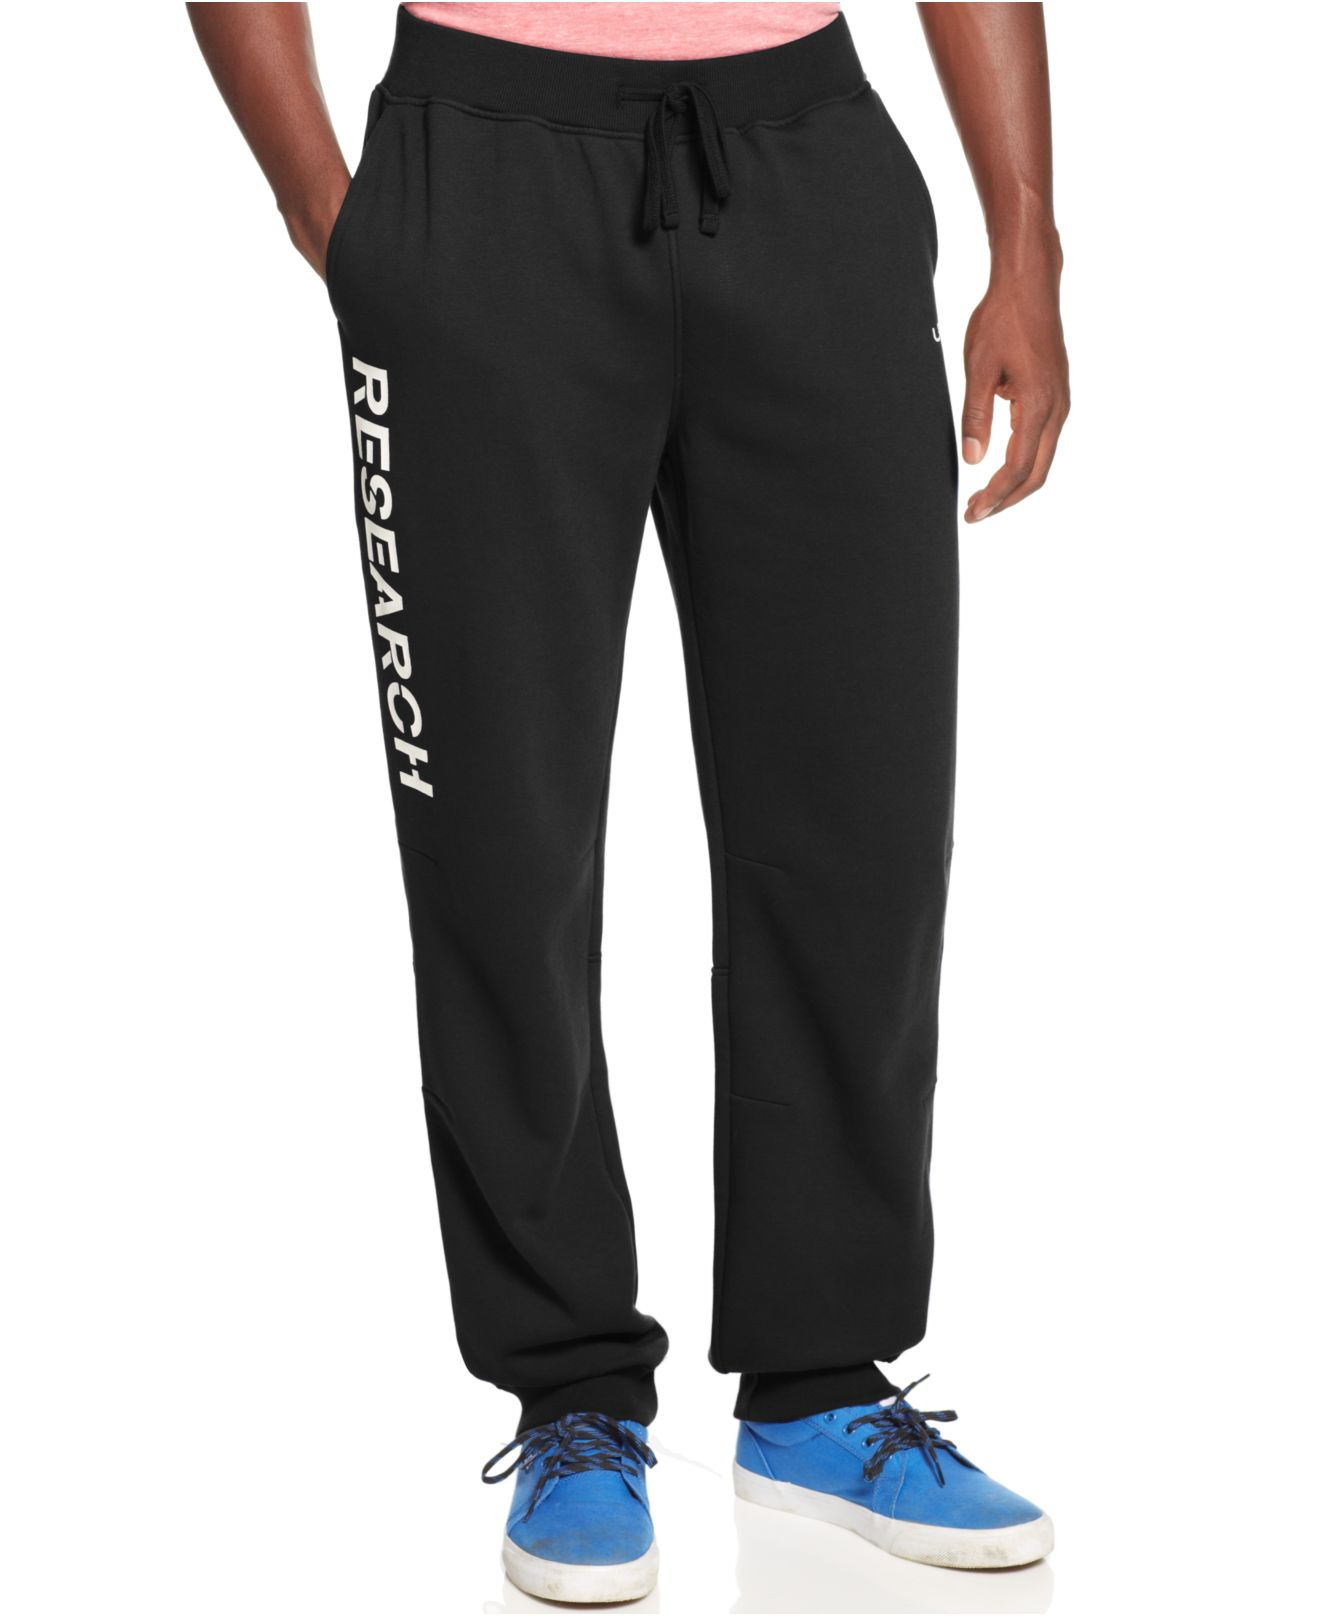 Shop for men's pants & tights at manakamanamobilecenter.tk Enjoy free shipping and returns with NikePlus.